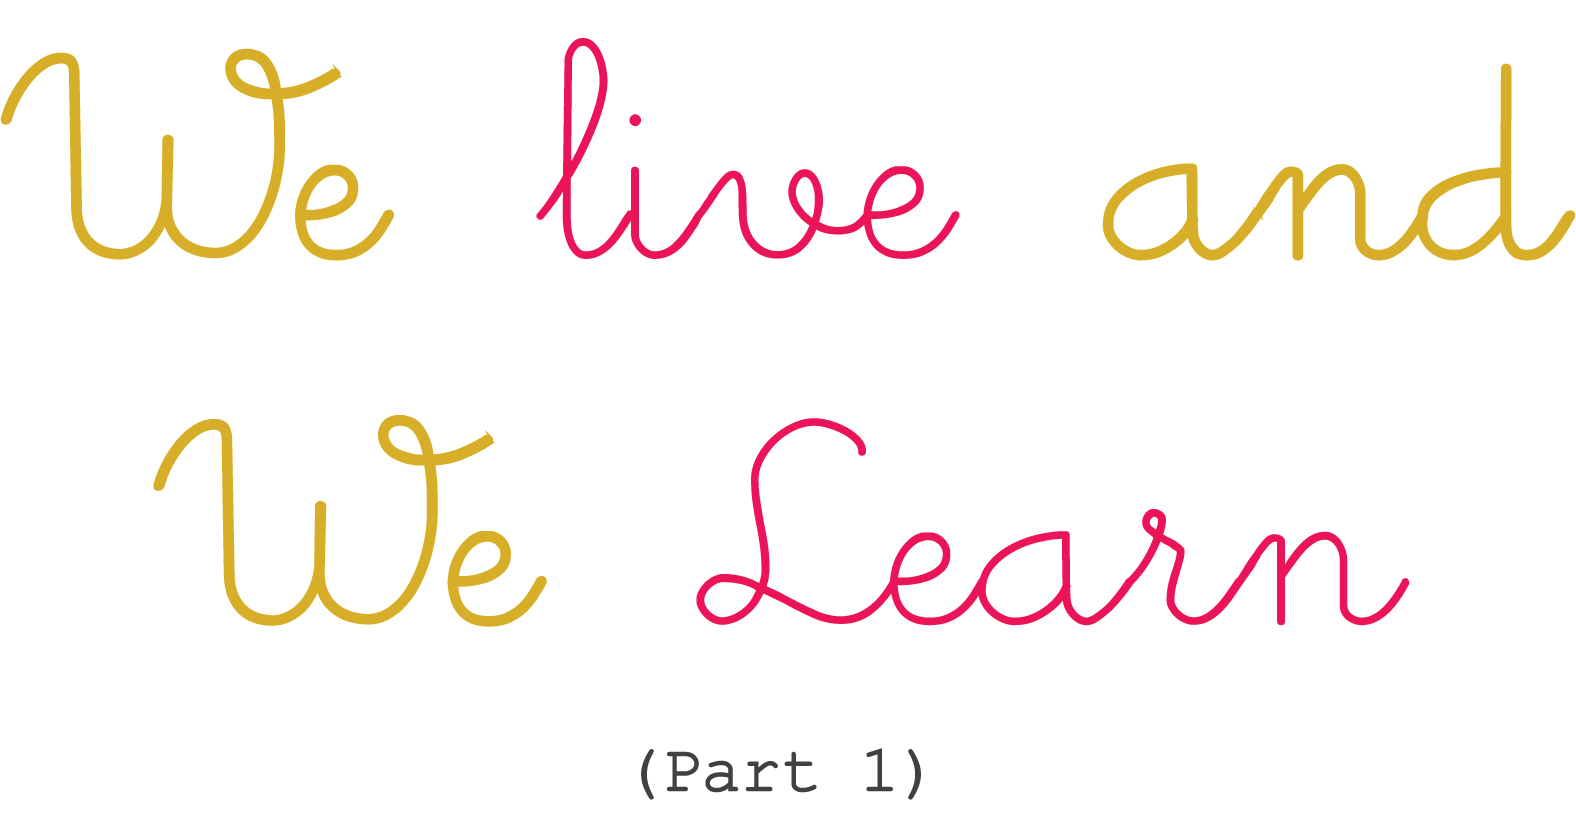 Live and learn - Idioms by The Free Dictionary